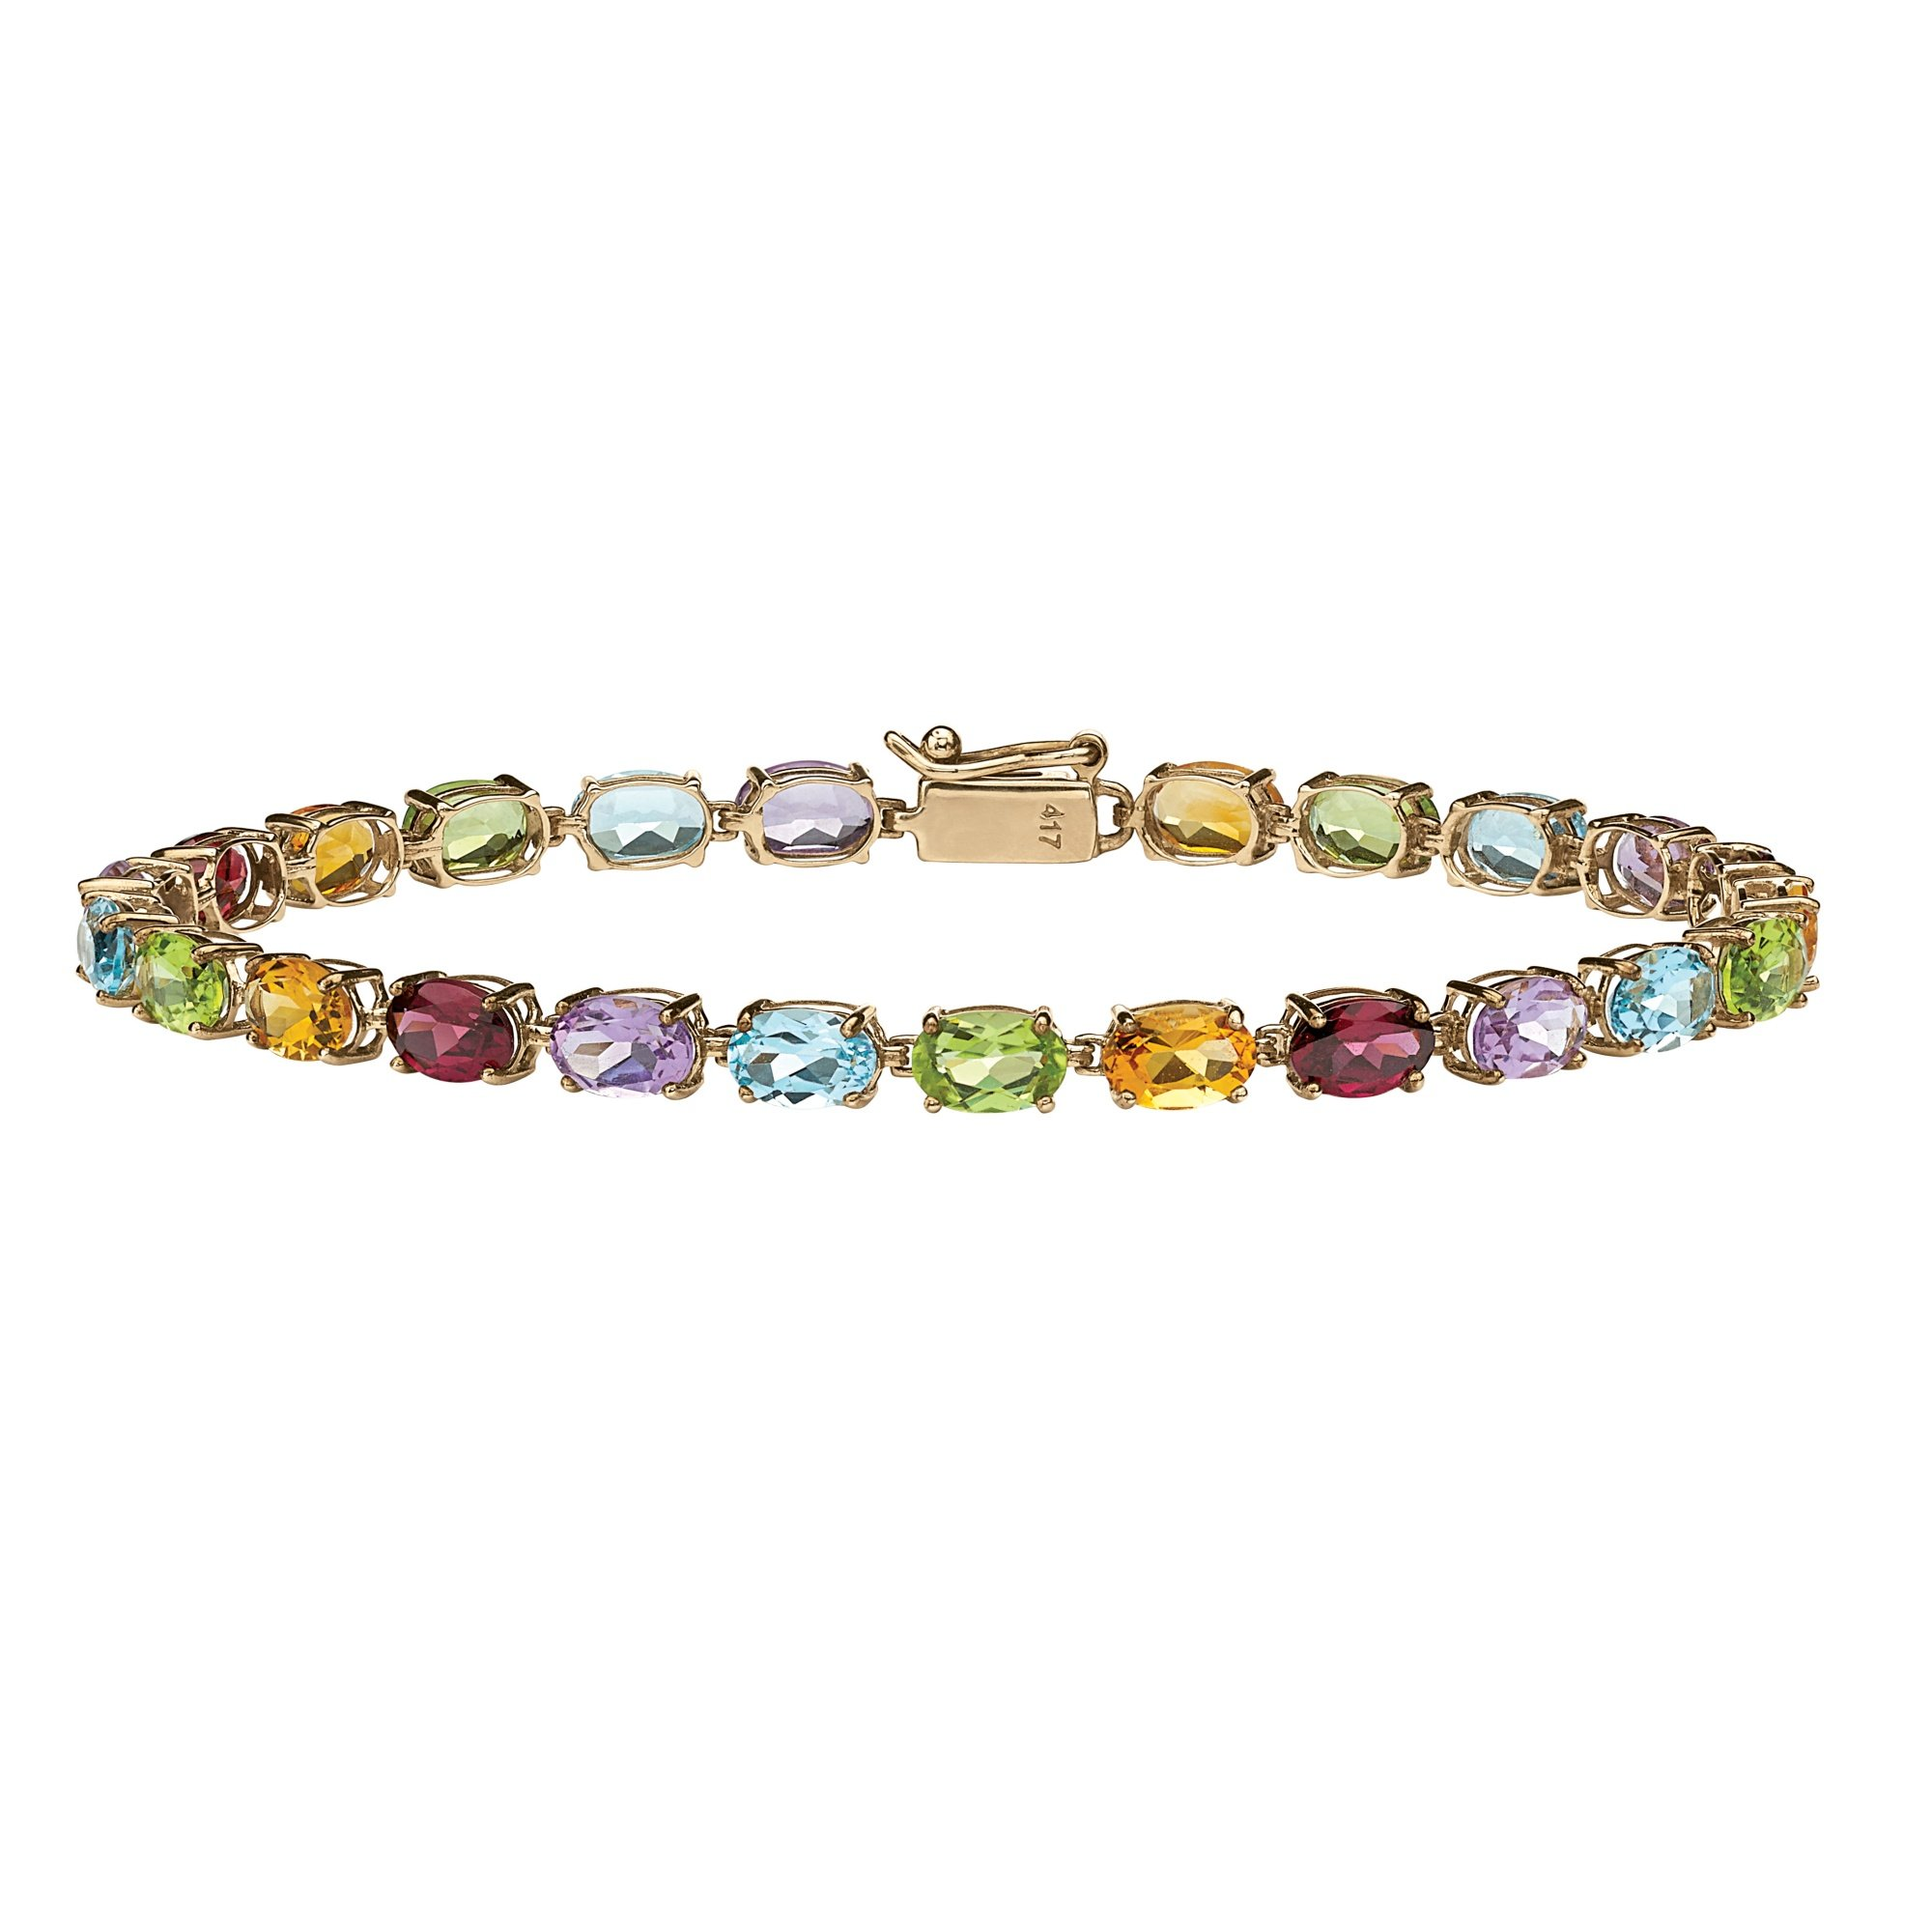 Oval-Cut Multi-Color Genuine Gemstone 10k Yellow Gold Tennis Bracelet 7.25'' by Lux